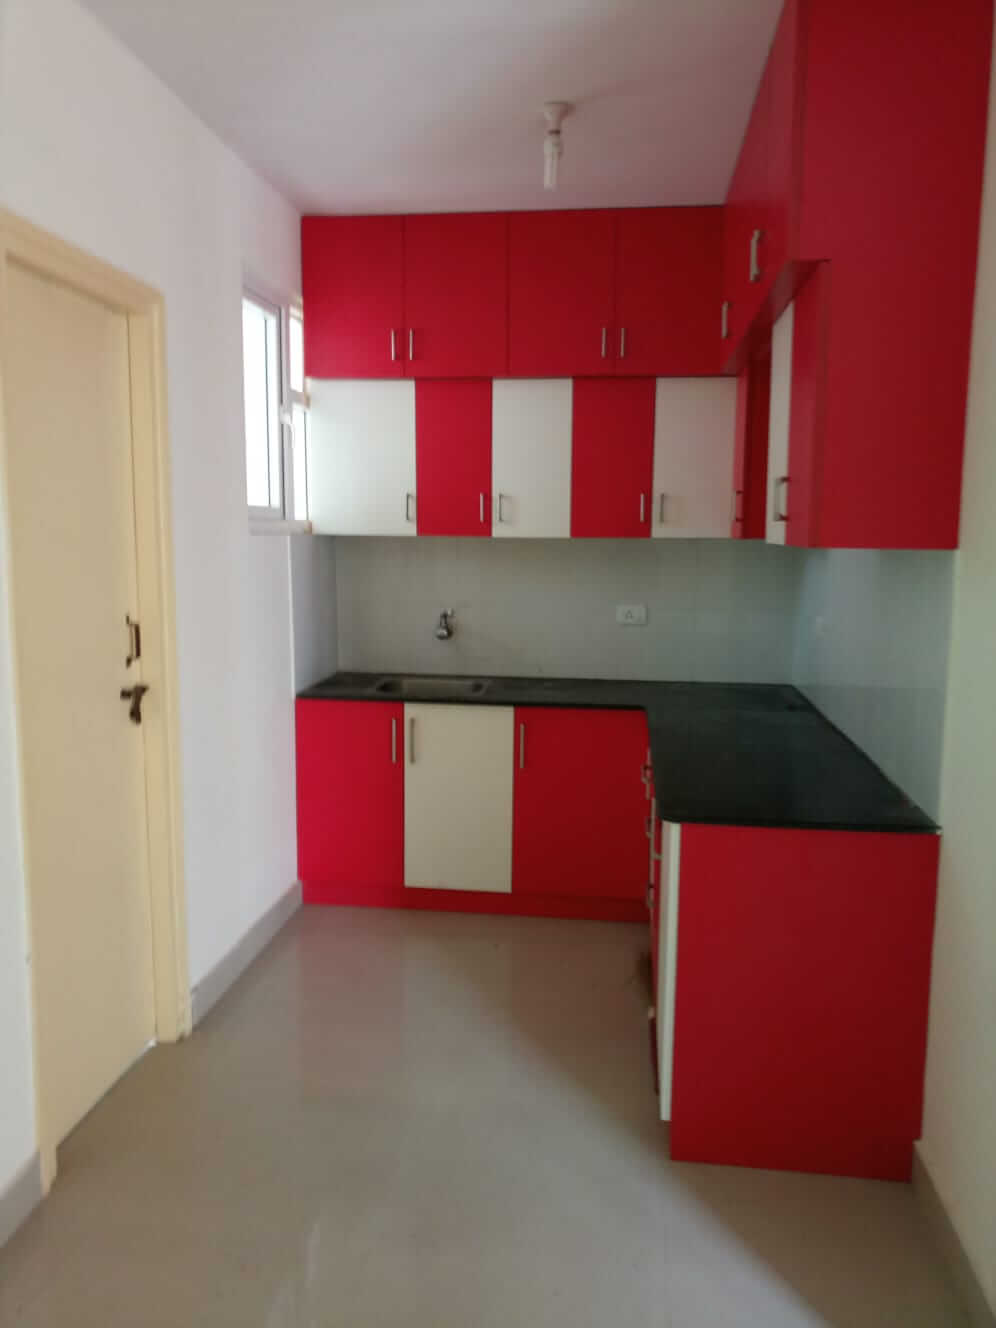 3 BHK Apartment / Flat for Sale 950 Sq. Feet at Bangalore